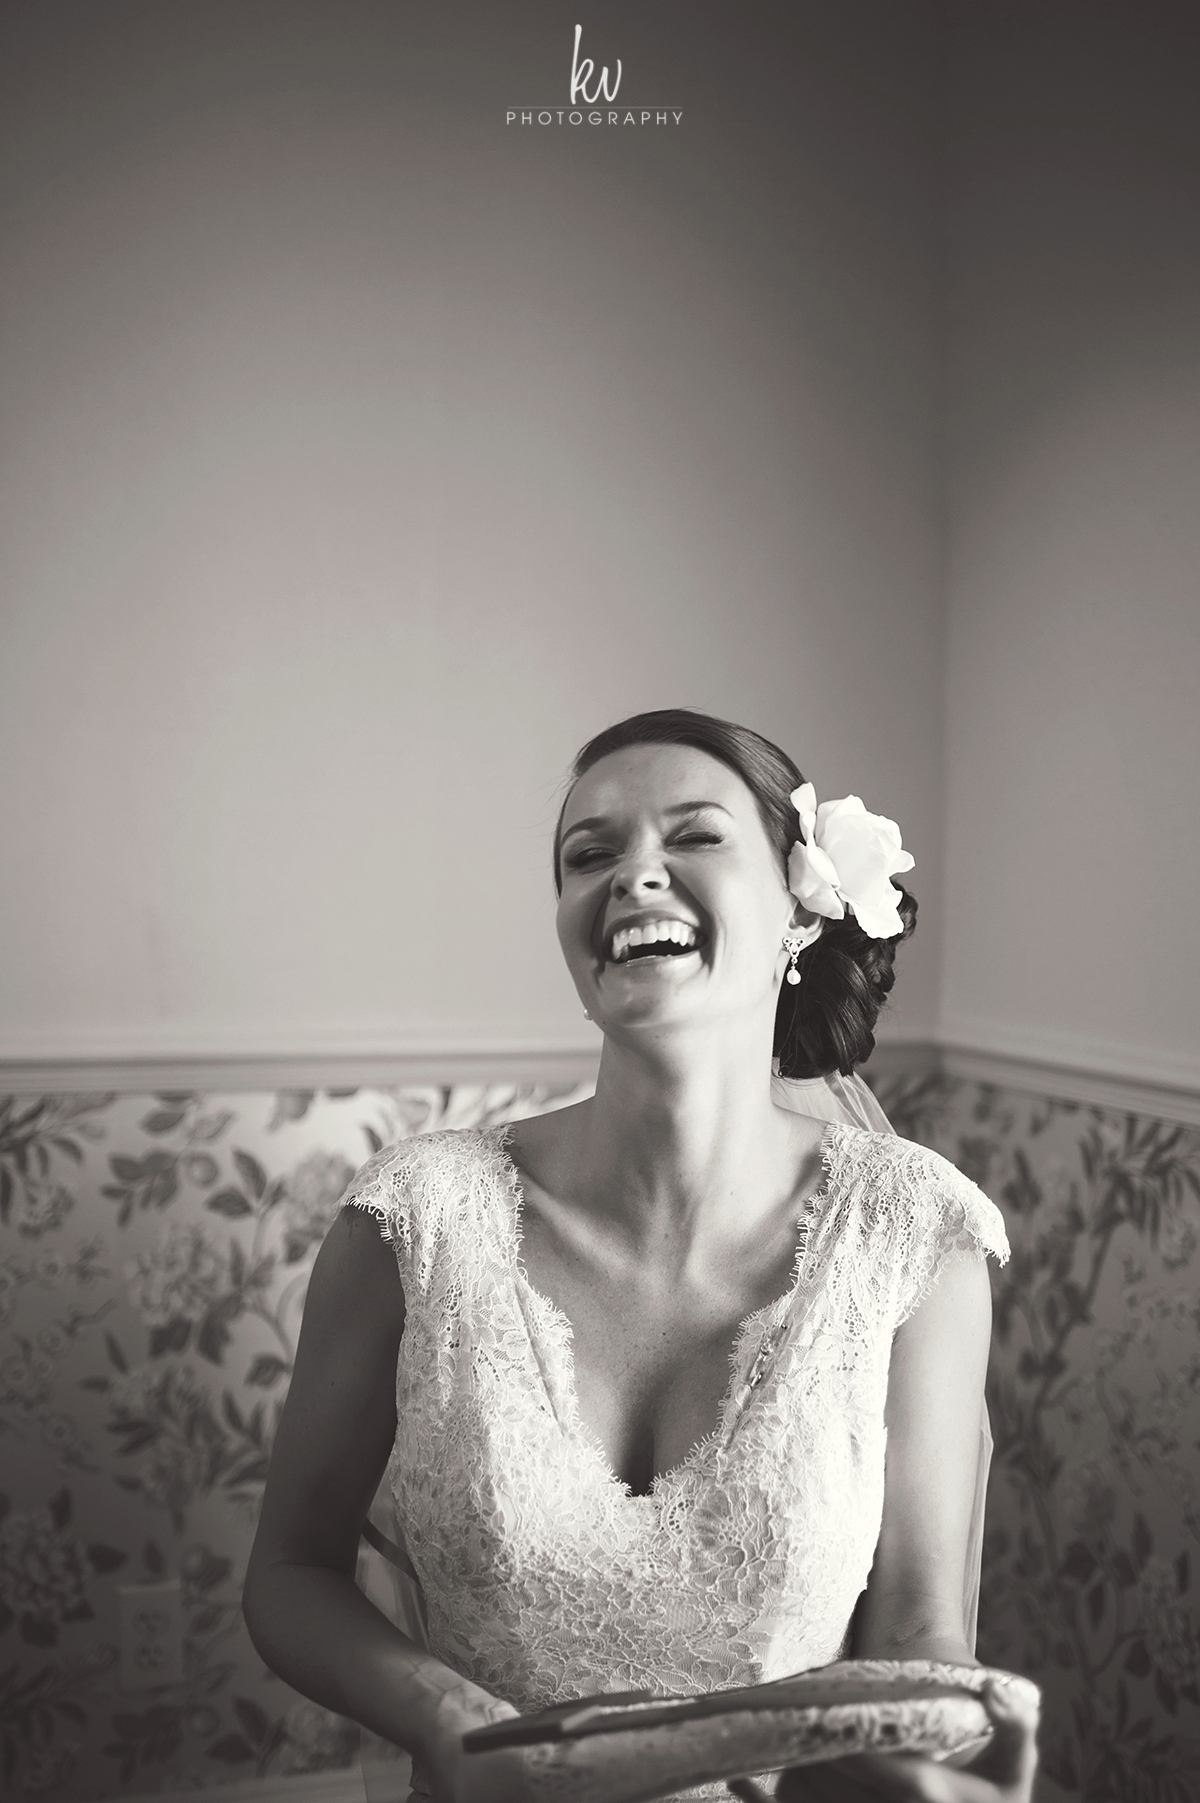 Bride getting ready at Highland Manor on her wedding day